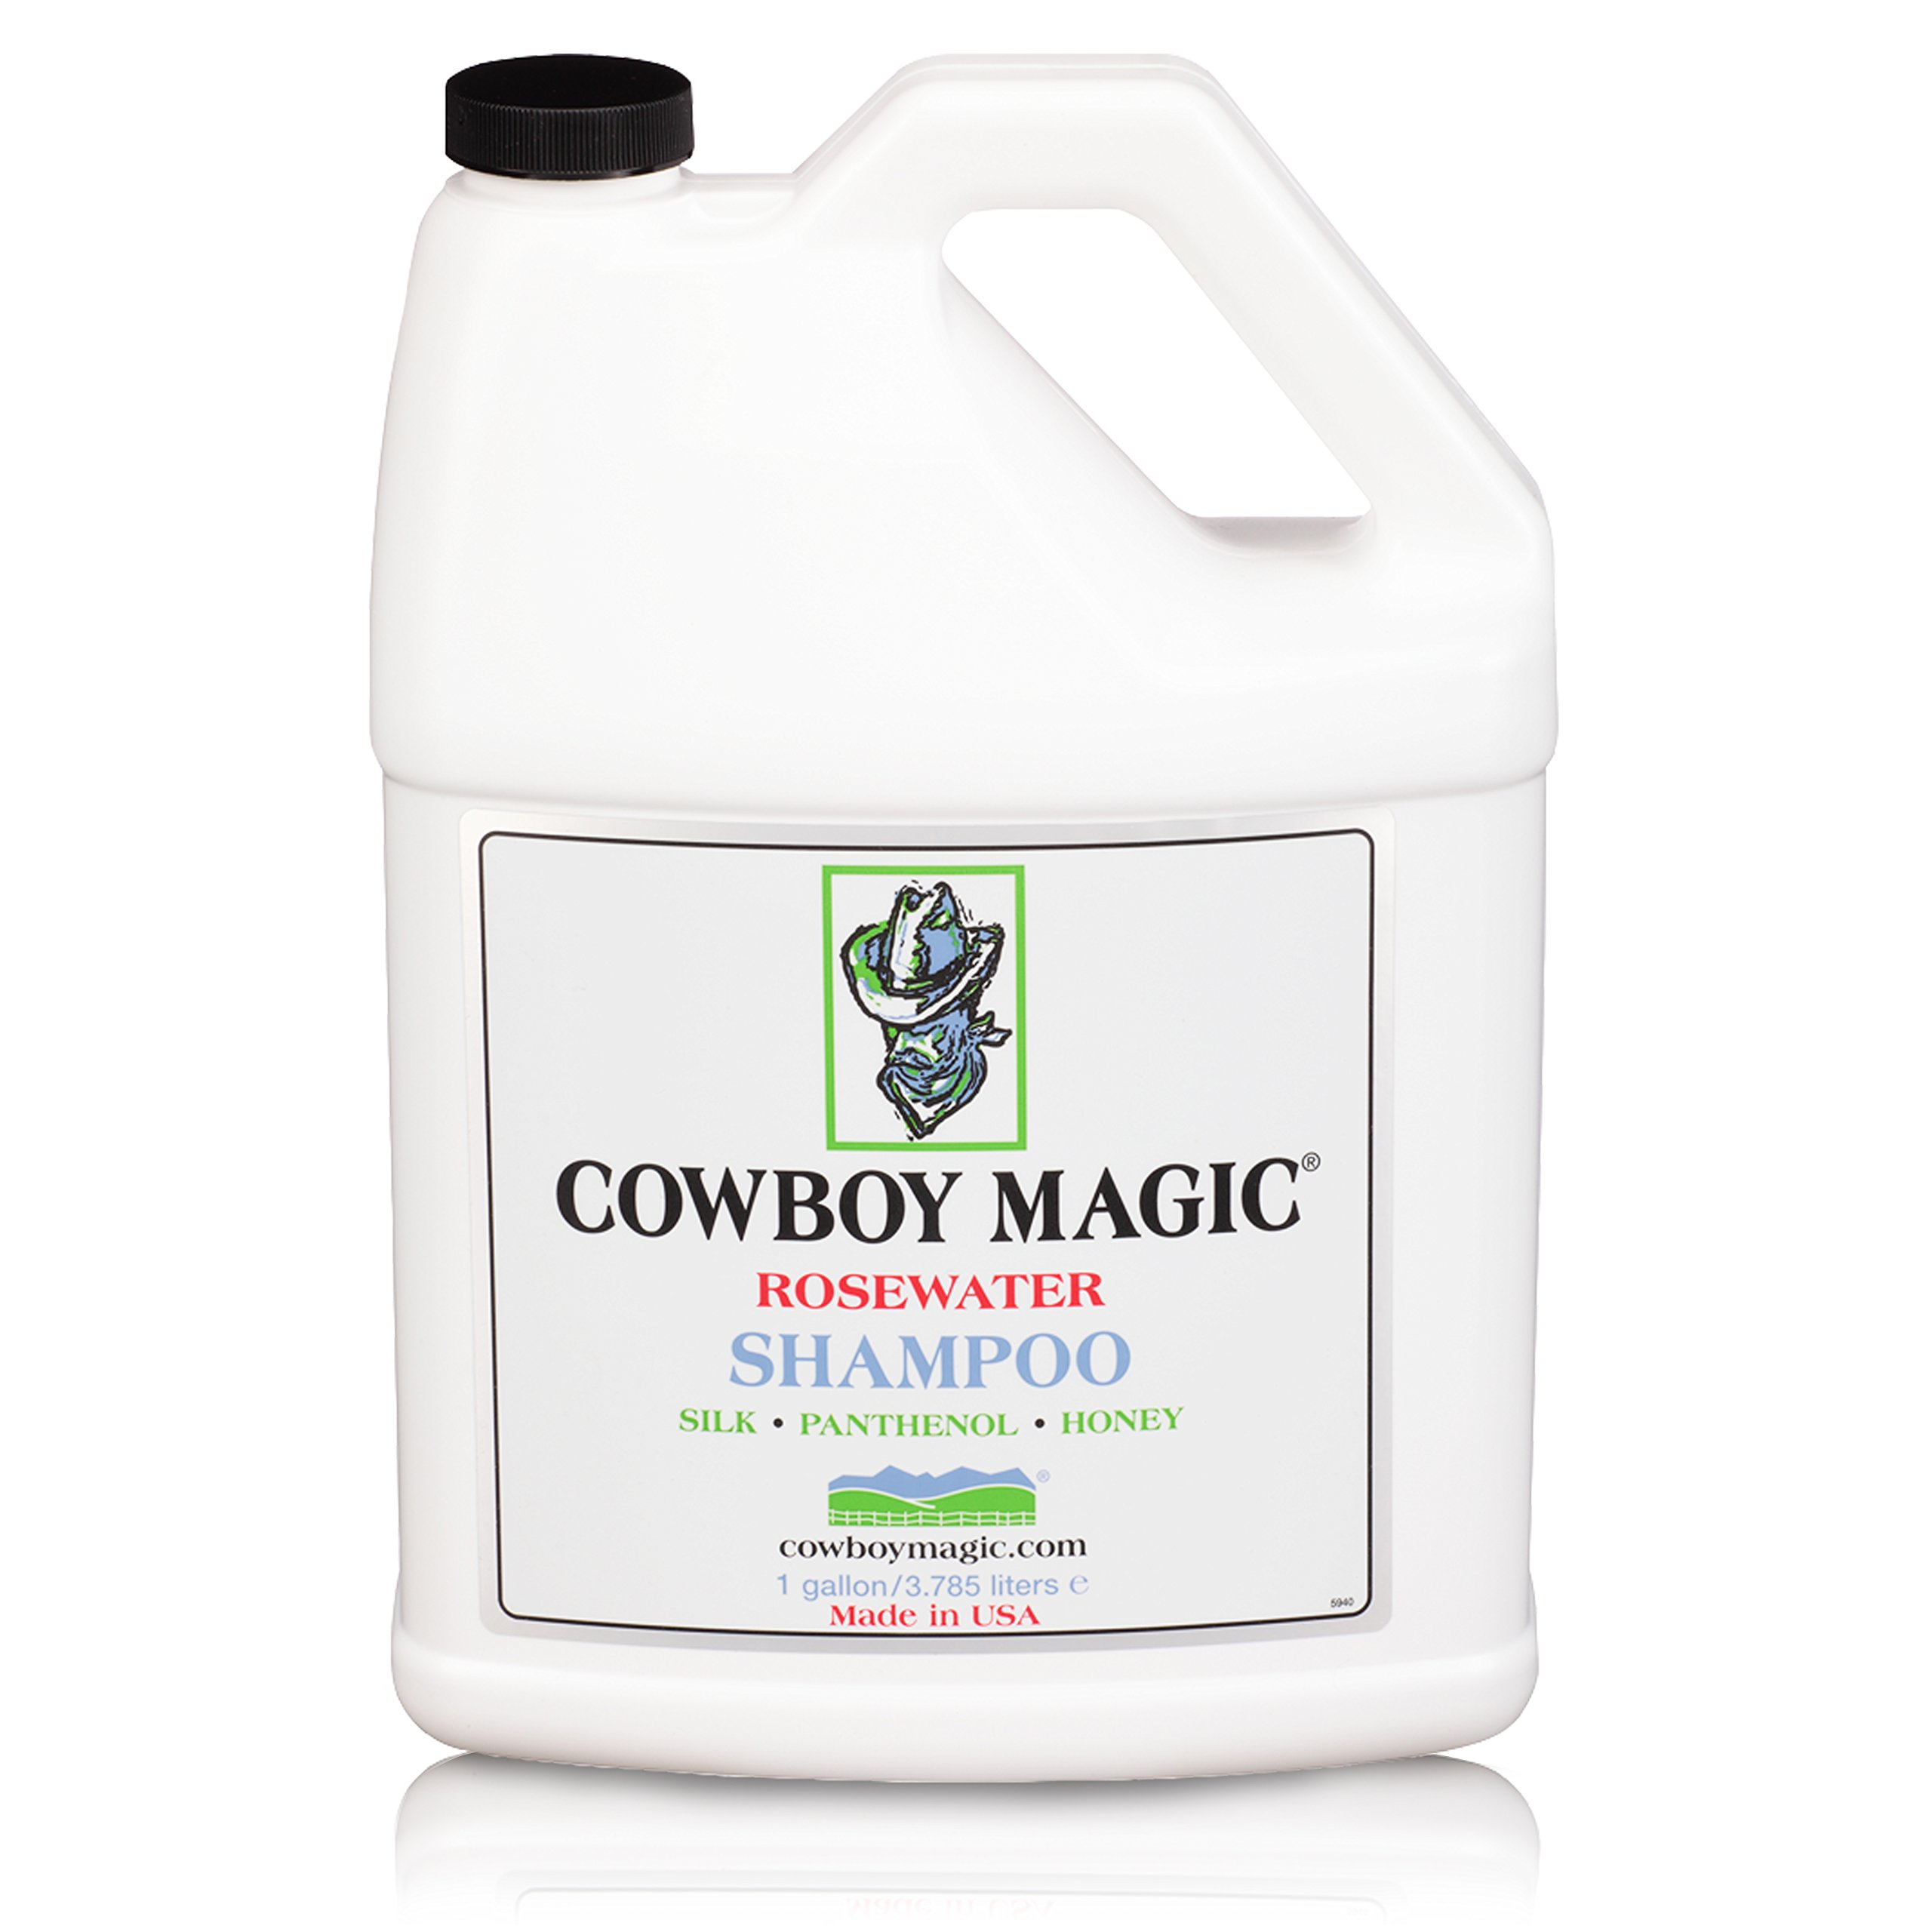 Cowboy Magic Rosewater Shampoo Refill 1 Gallon